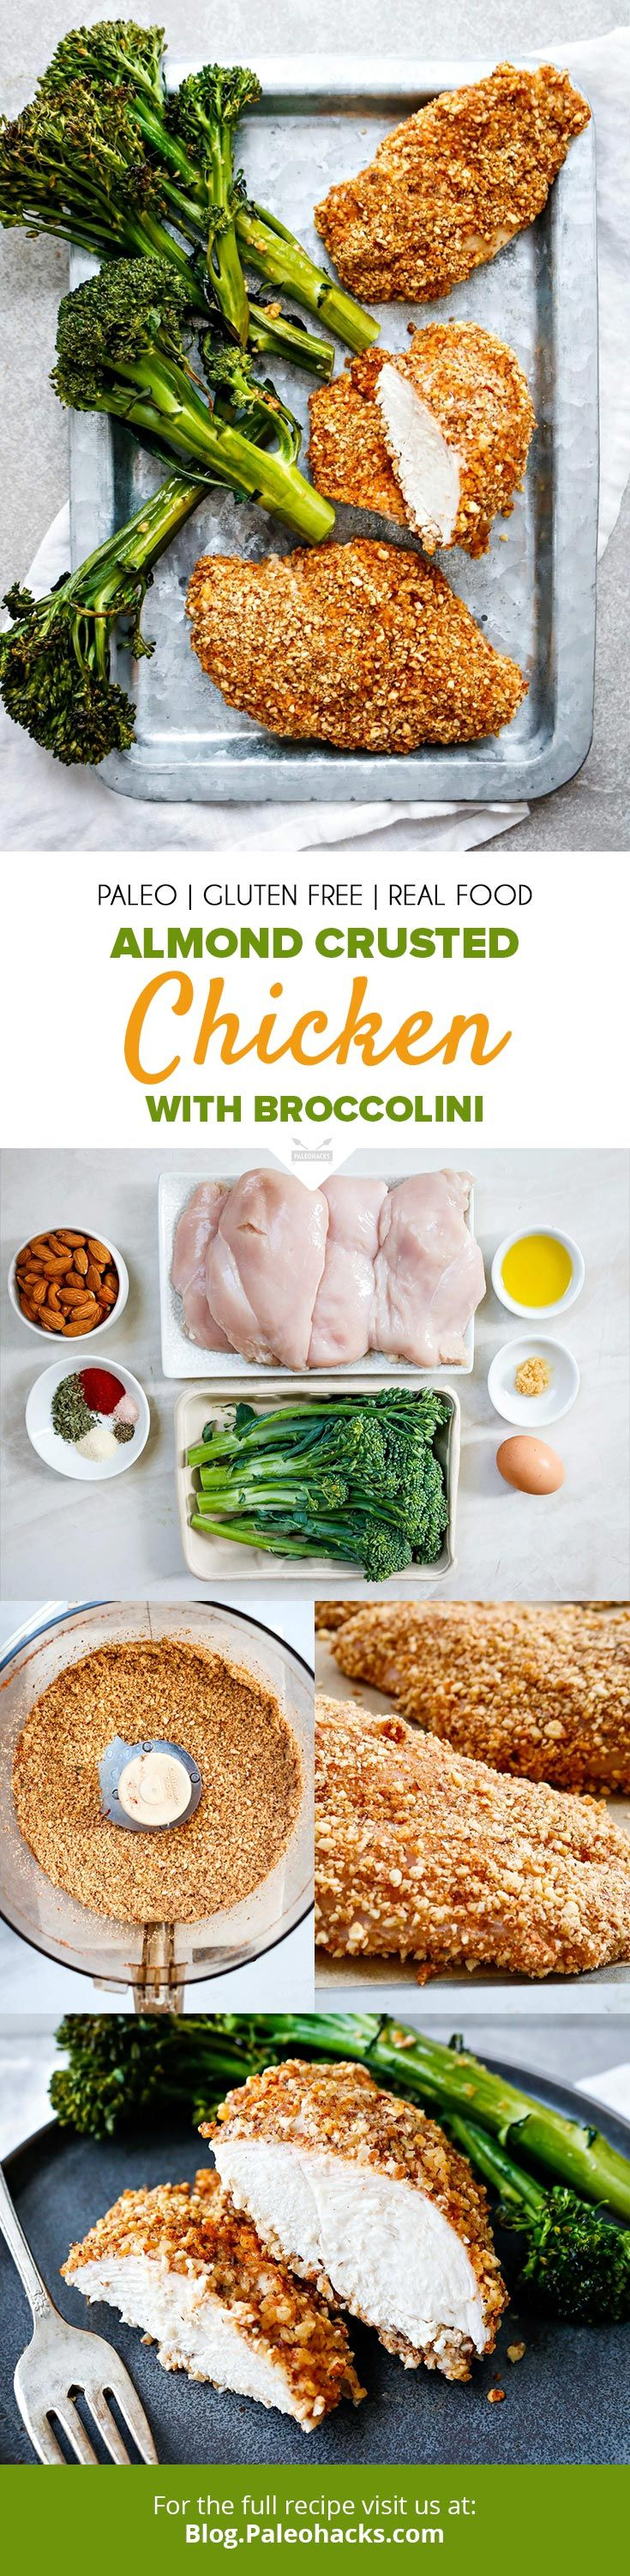 Almond Crusted Chicken with Broccolini